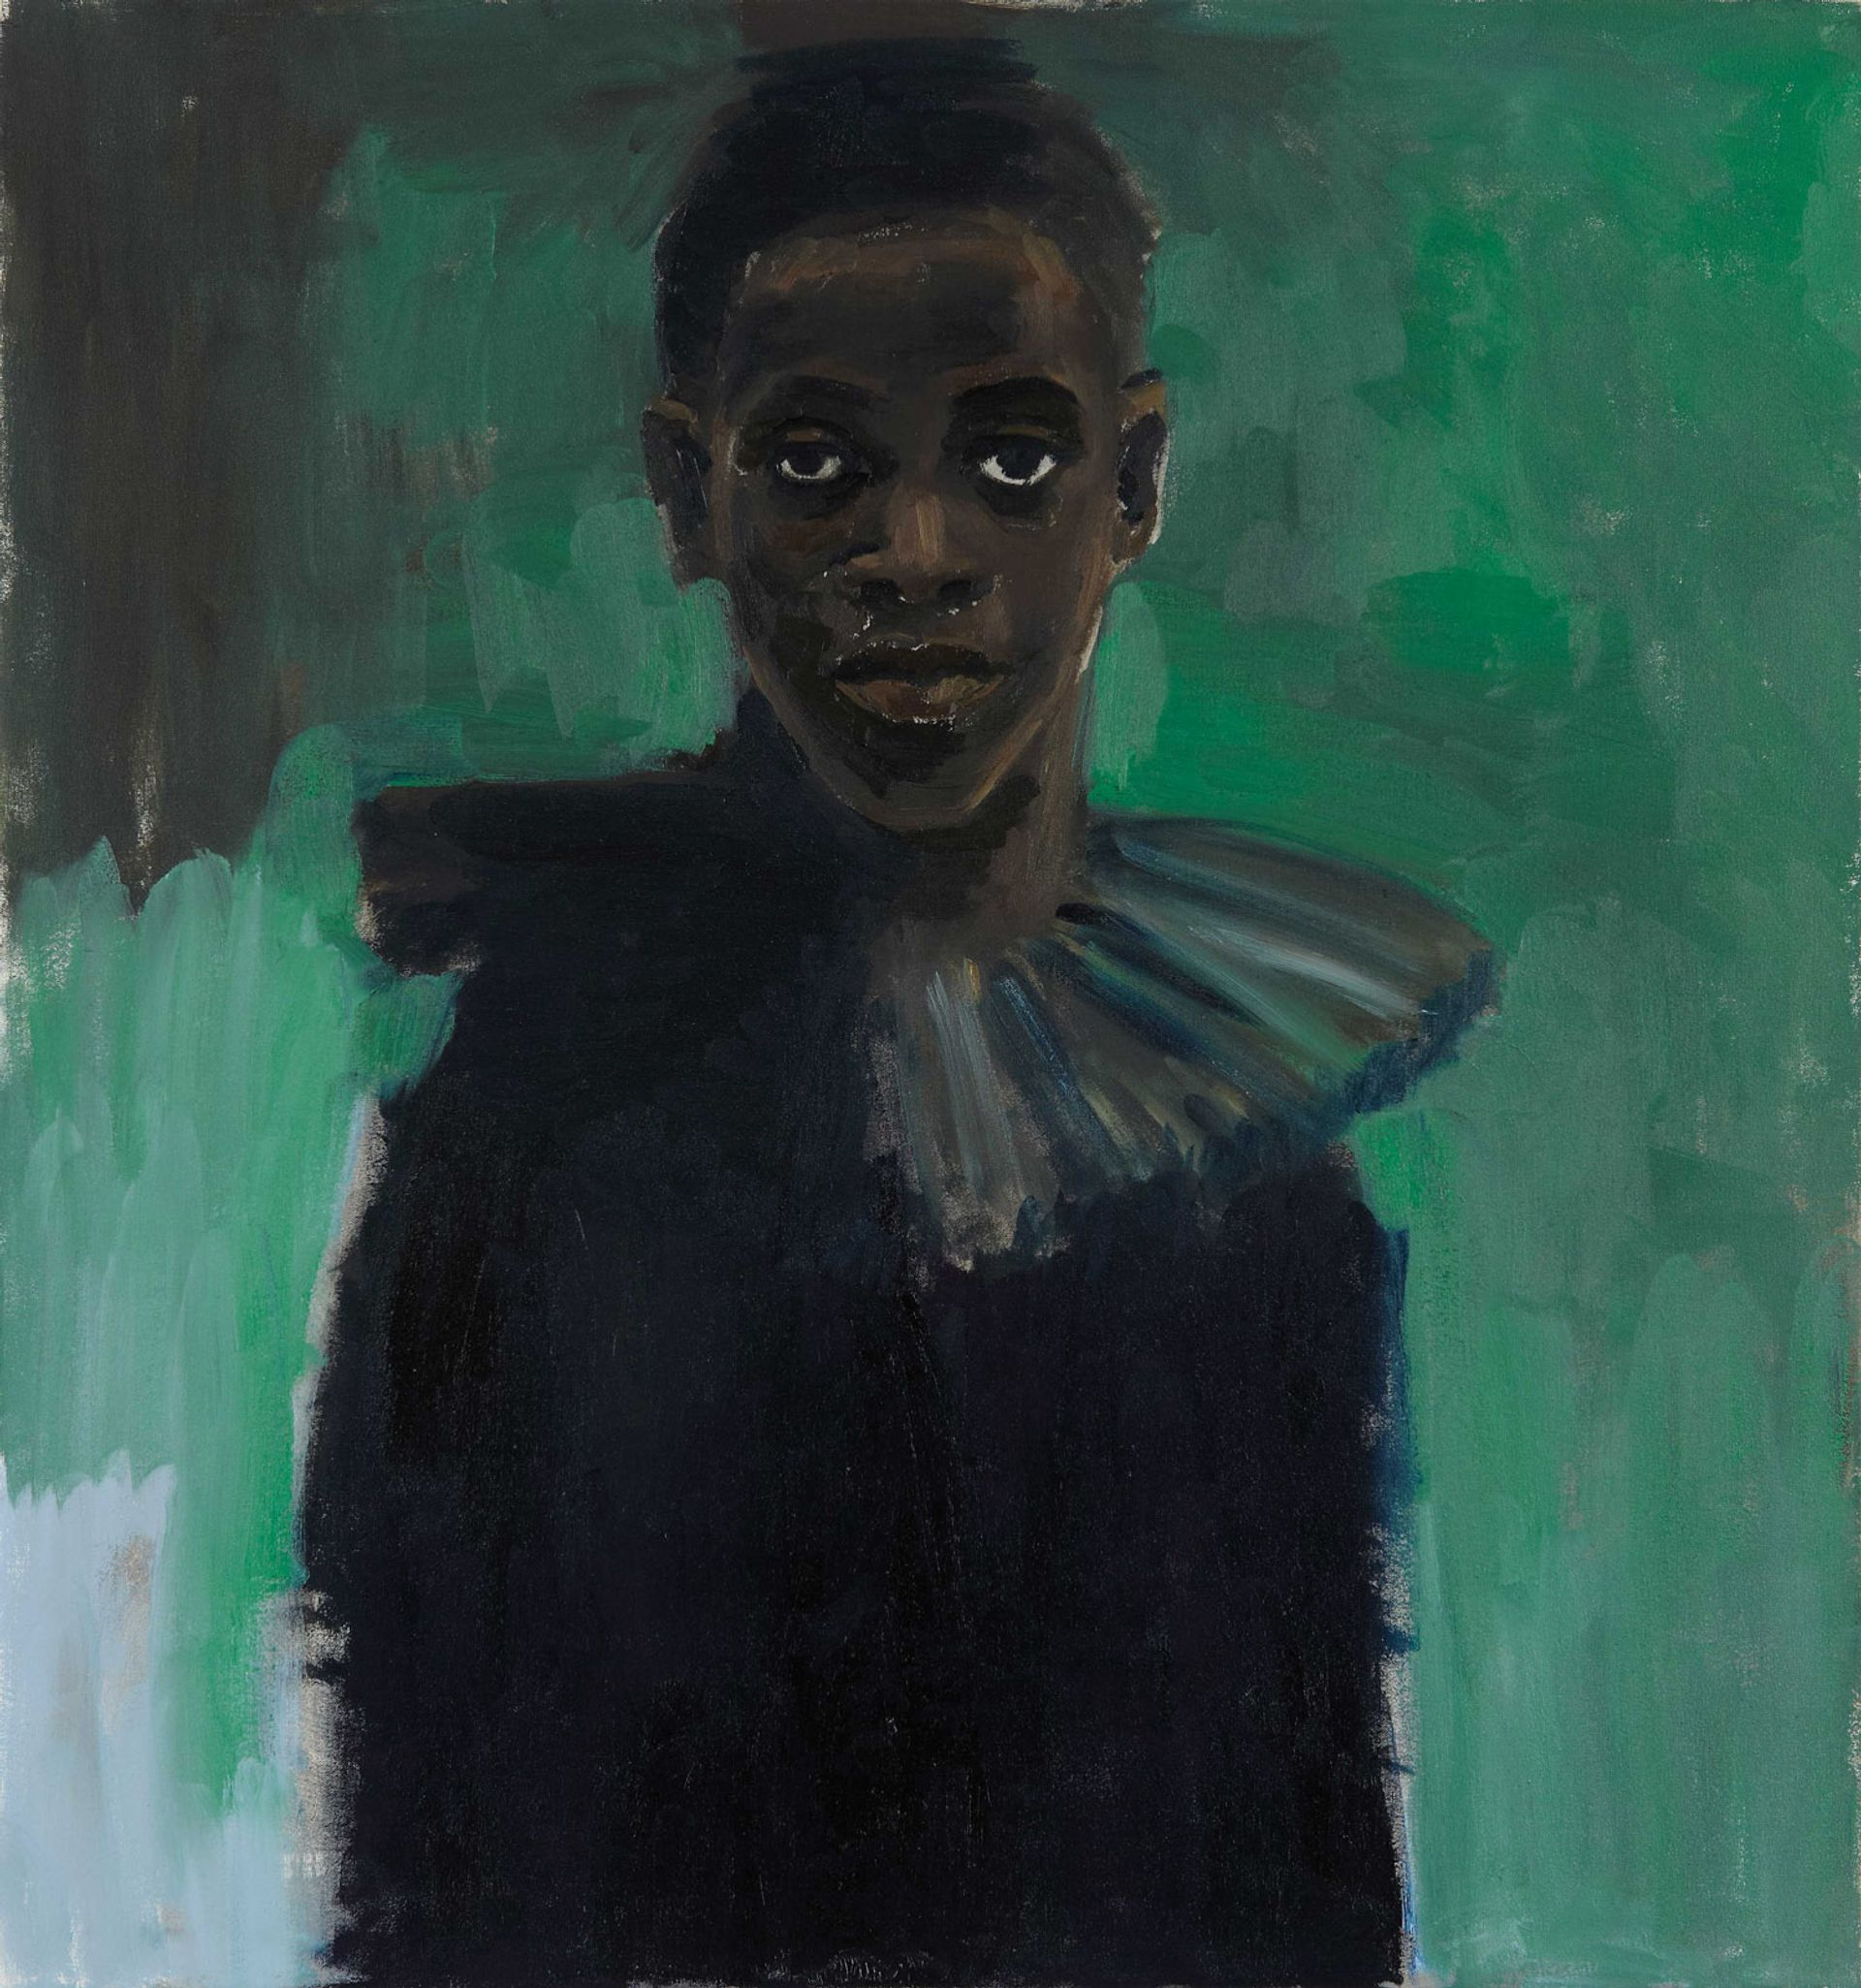 Yiadom-Boakye's portraits, suchas A Passion Like No Other (2012), arecomposite constructions informed by scrapbooks created by the artist © Lynette Yiadom-Boakye